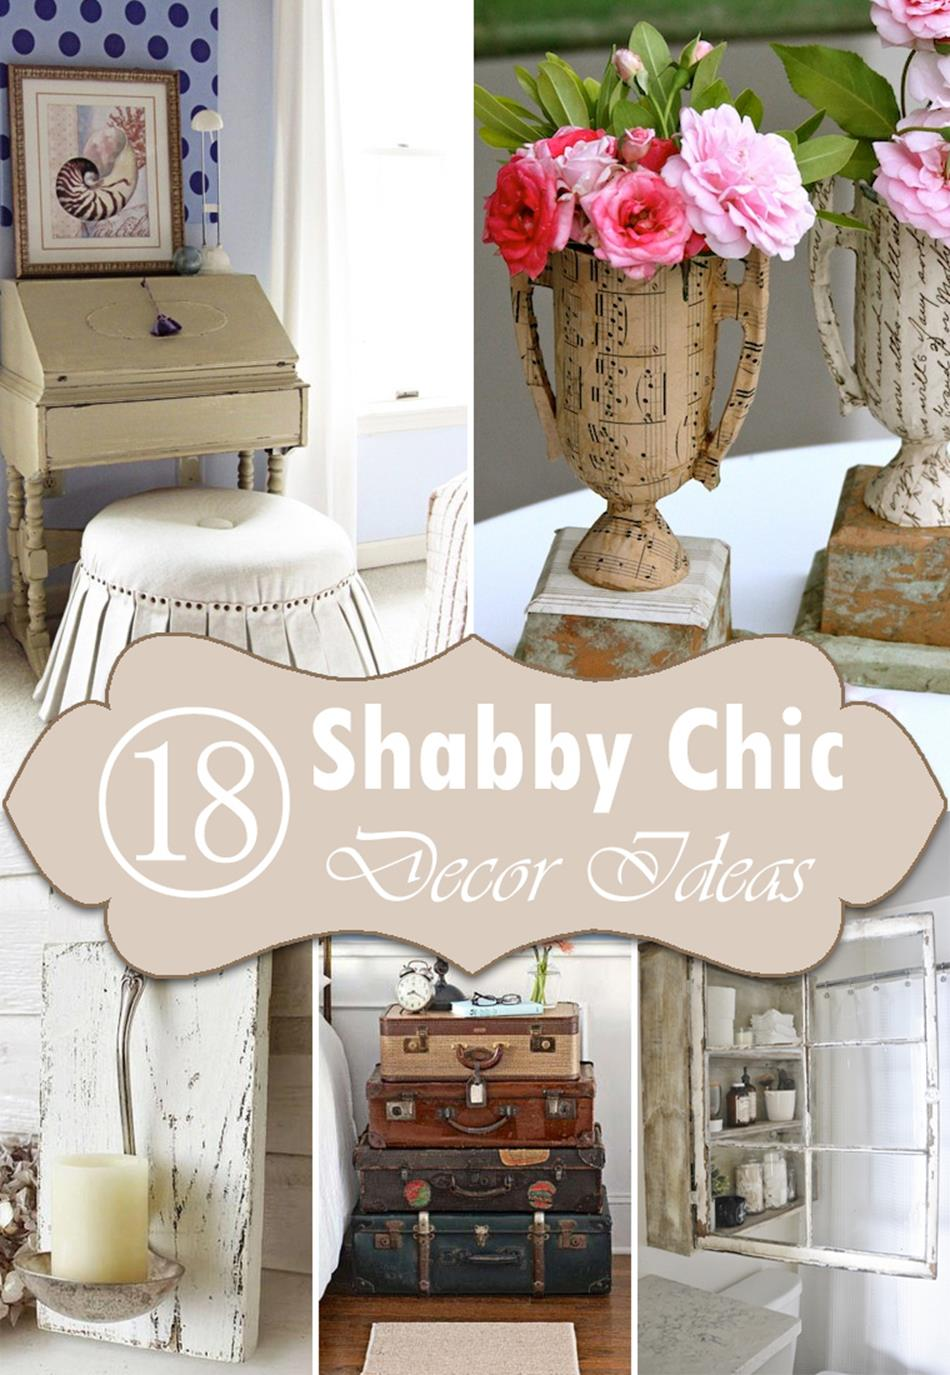 Family Room Design Ideas On A Budget: Shabby Chic Living Room Decorating On A Budget 4